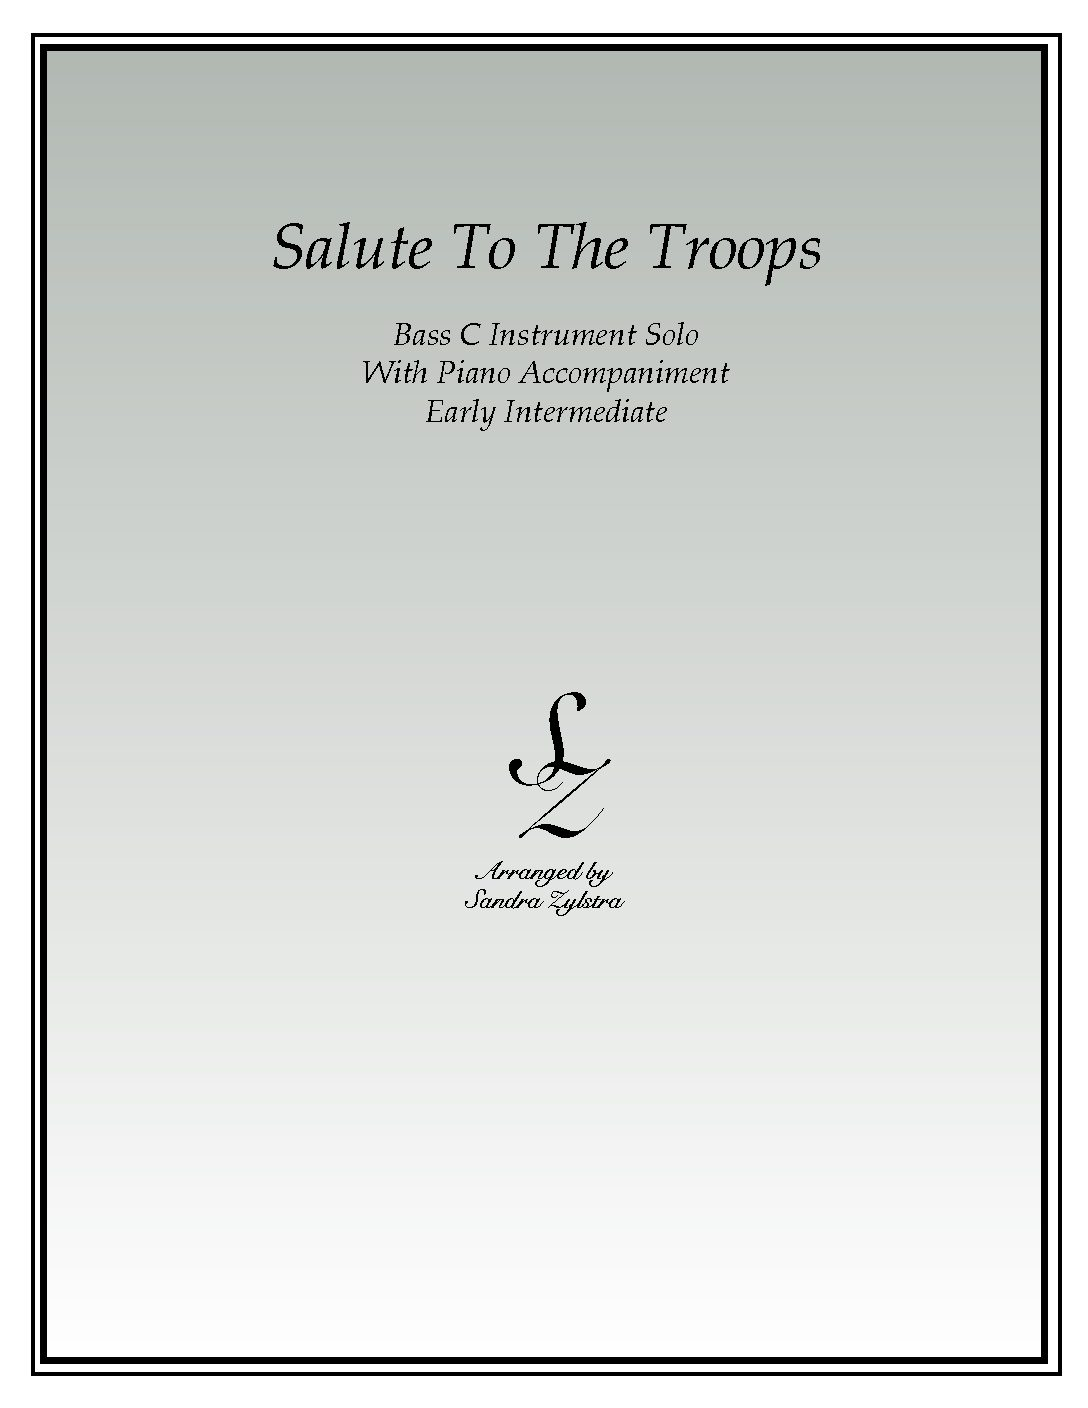 Salute To The Troops -Bass C Instrument Solo